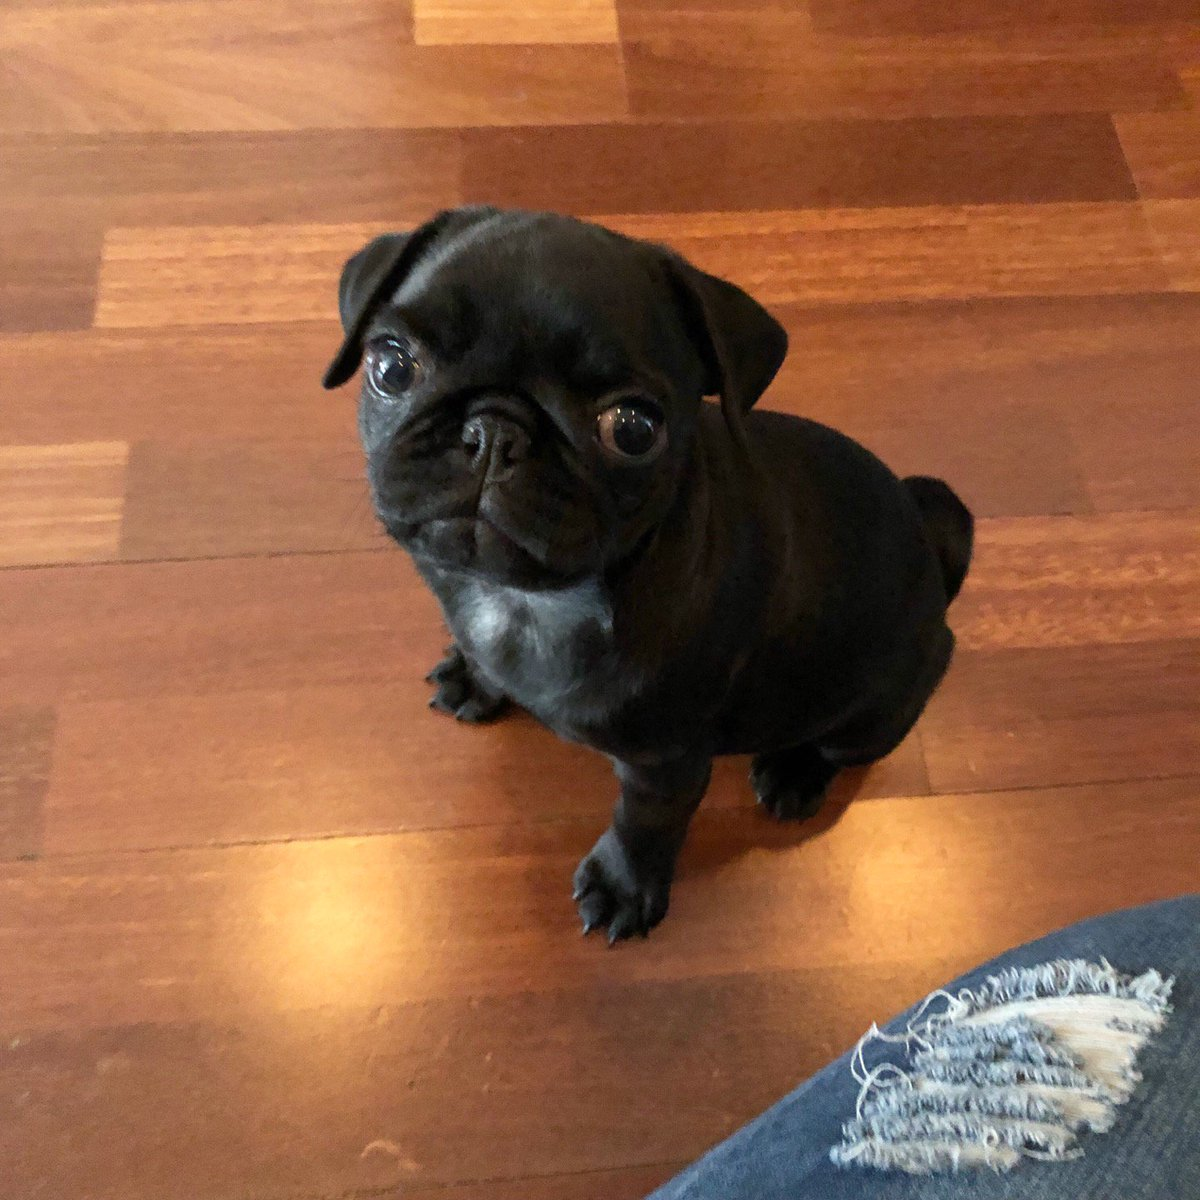 Luisa On Twitter My Newest Doggyclient Is Lola The Pug Puppy